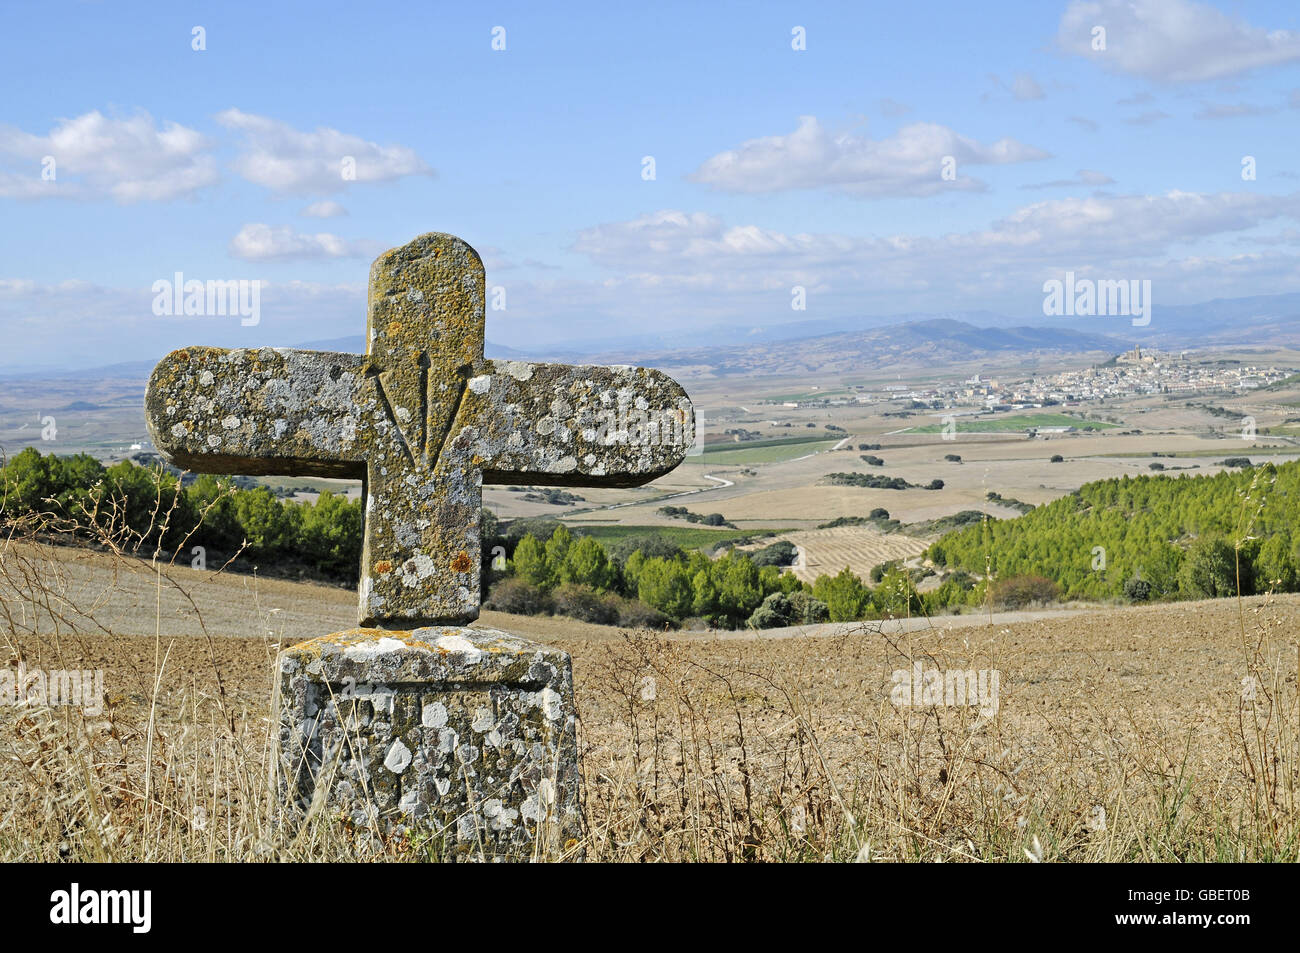 Scallop shell and cross, Way of St James, Olite, Navarra, Spain - Stock Image